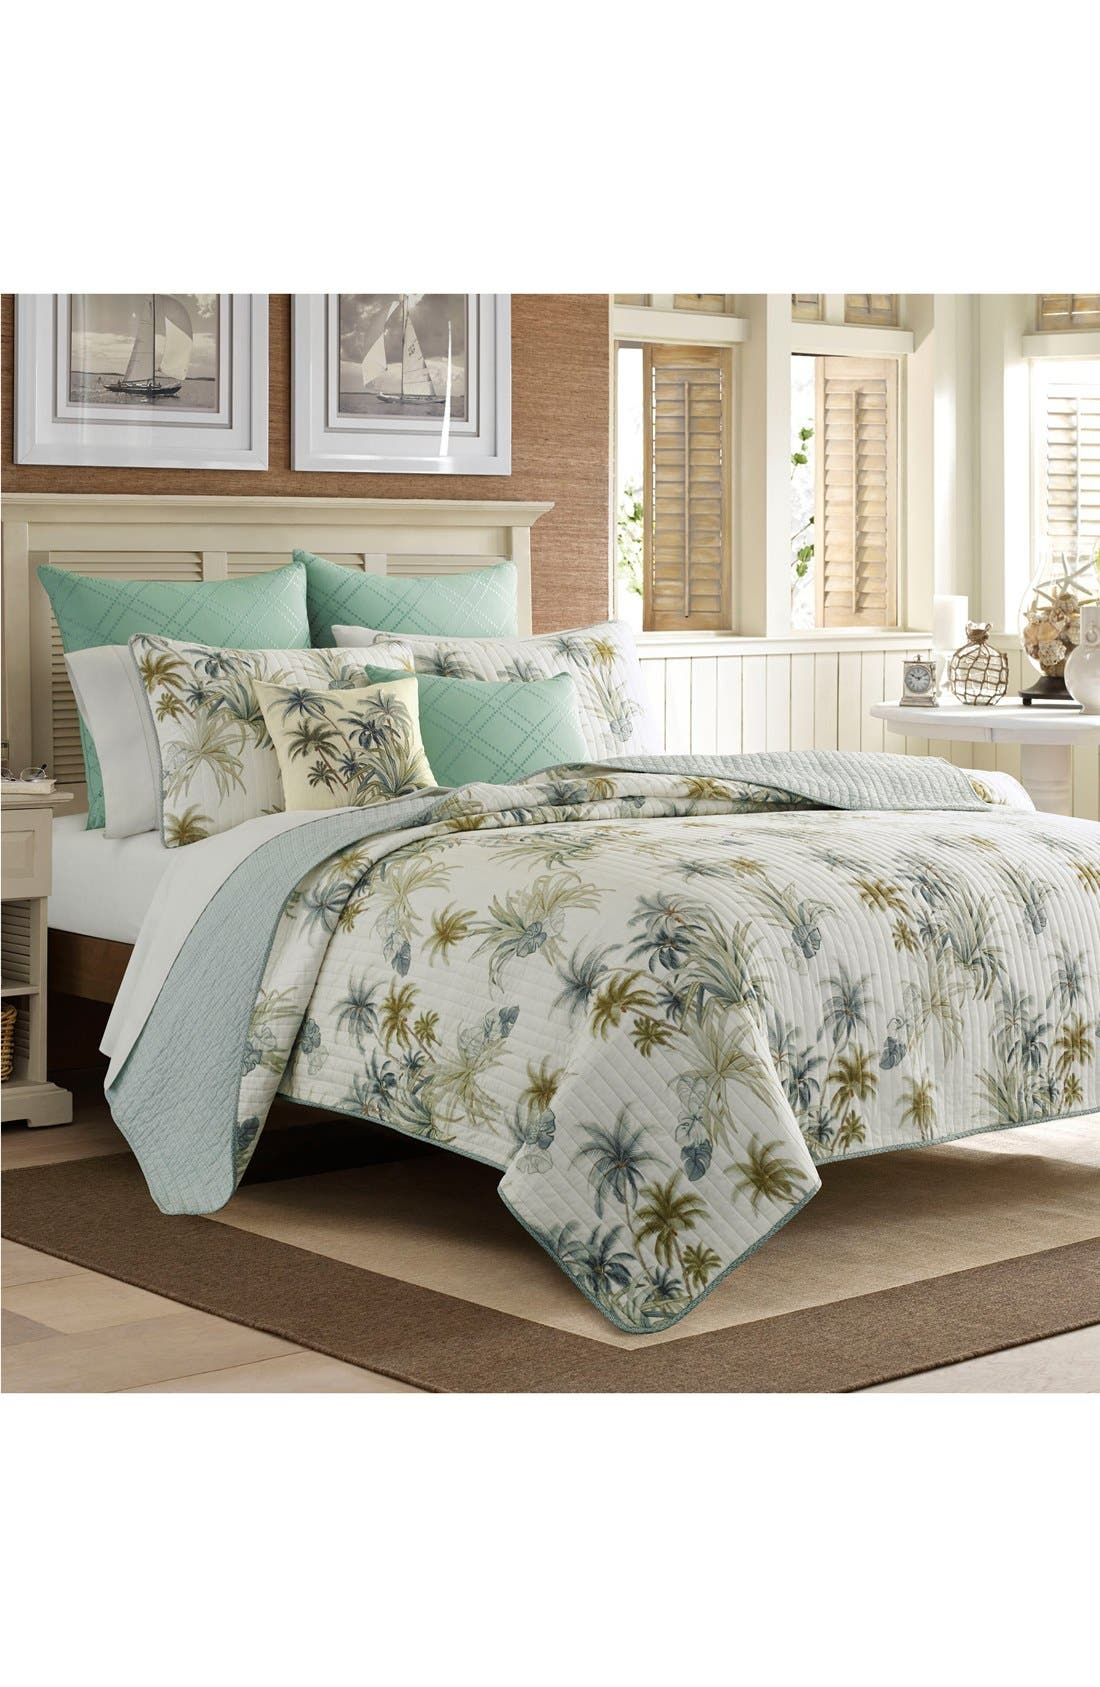 Main Image - Tommy Bahama Serenity Palms Quilt